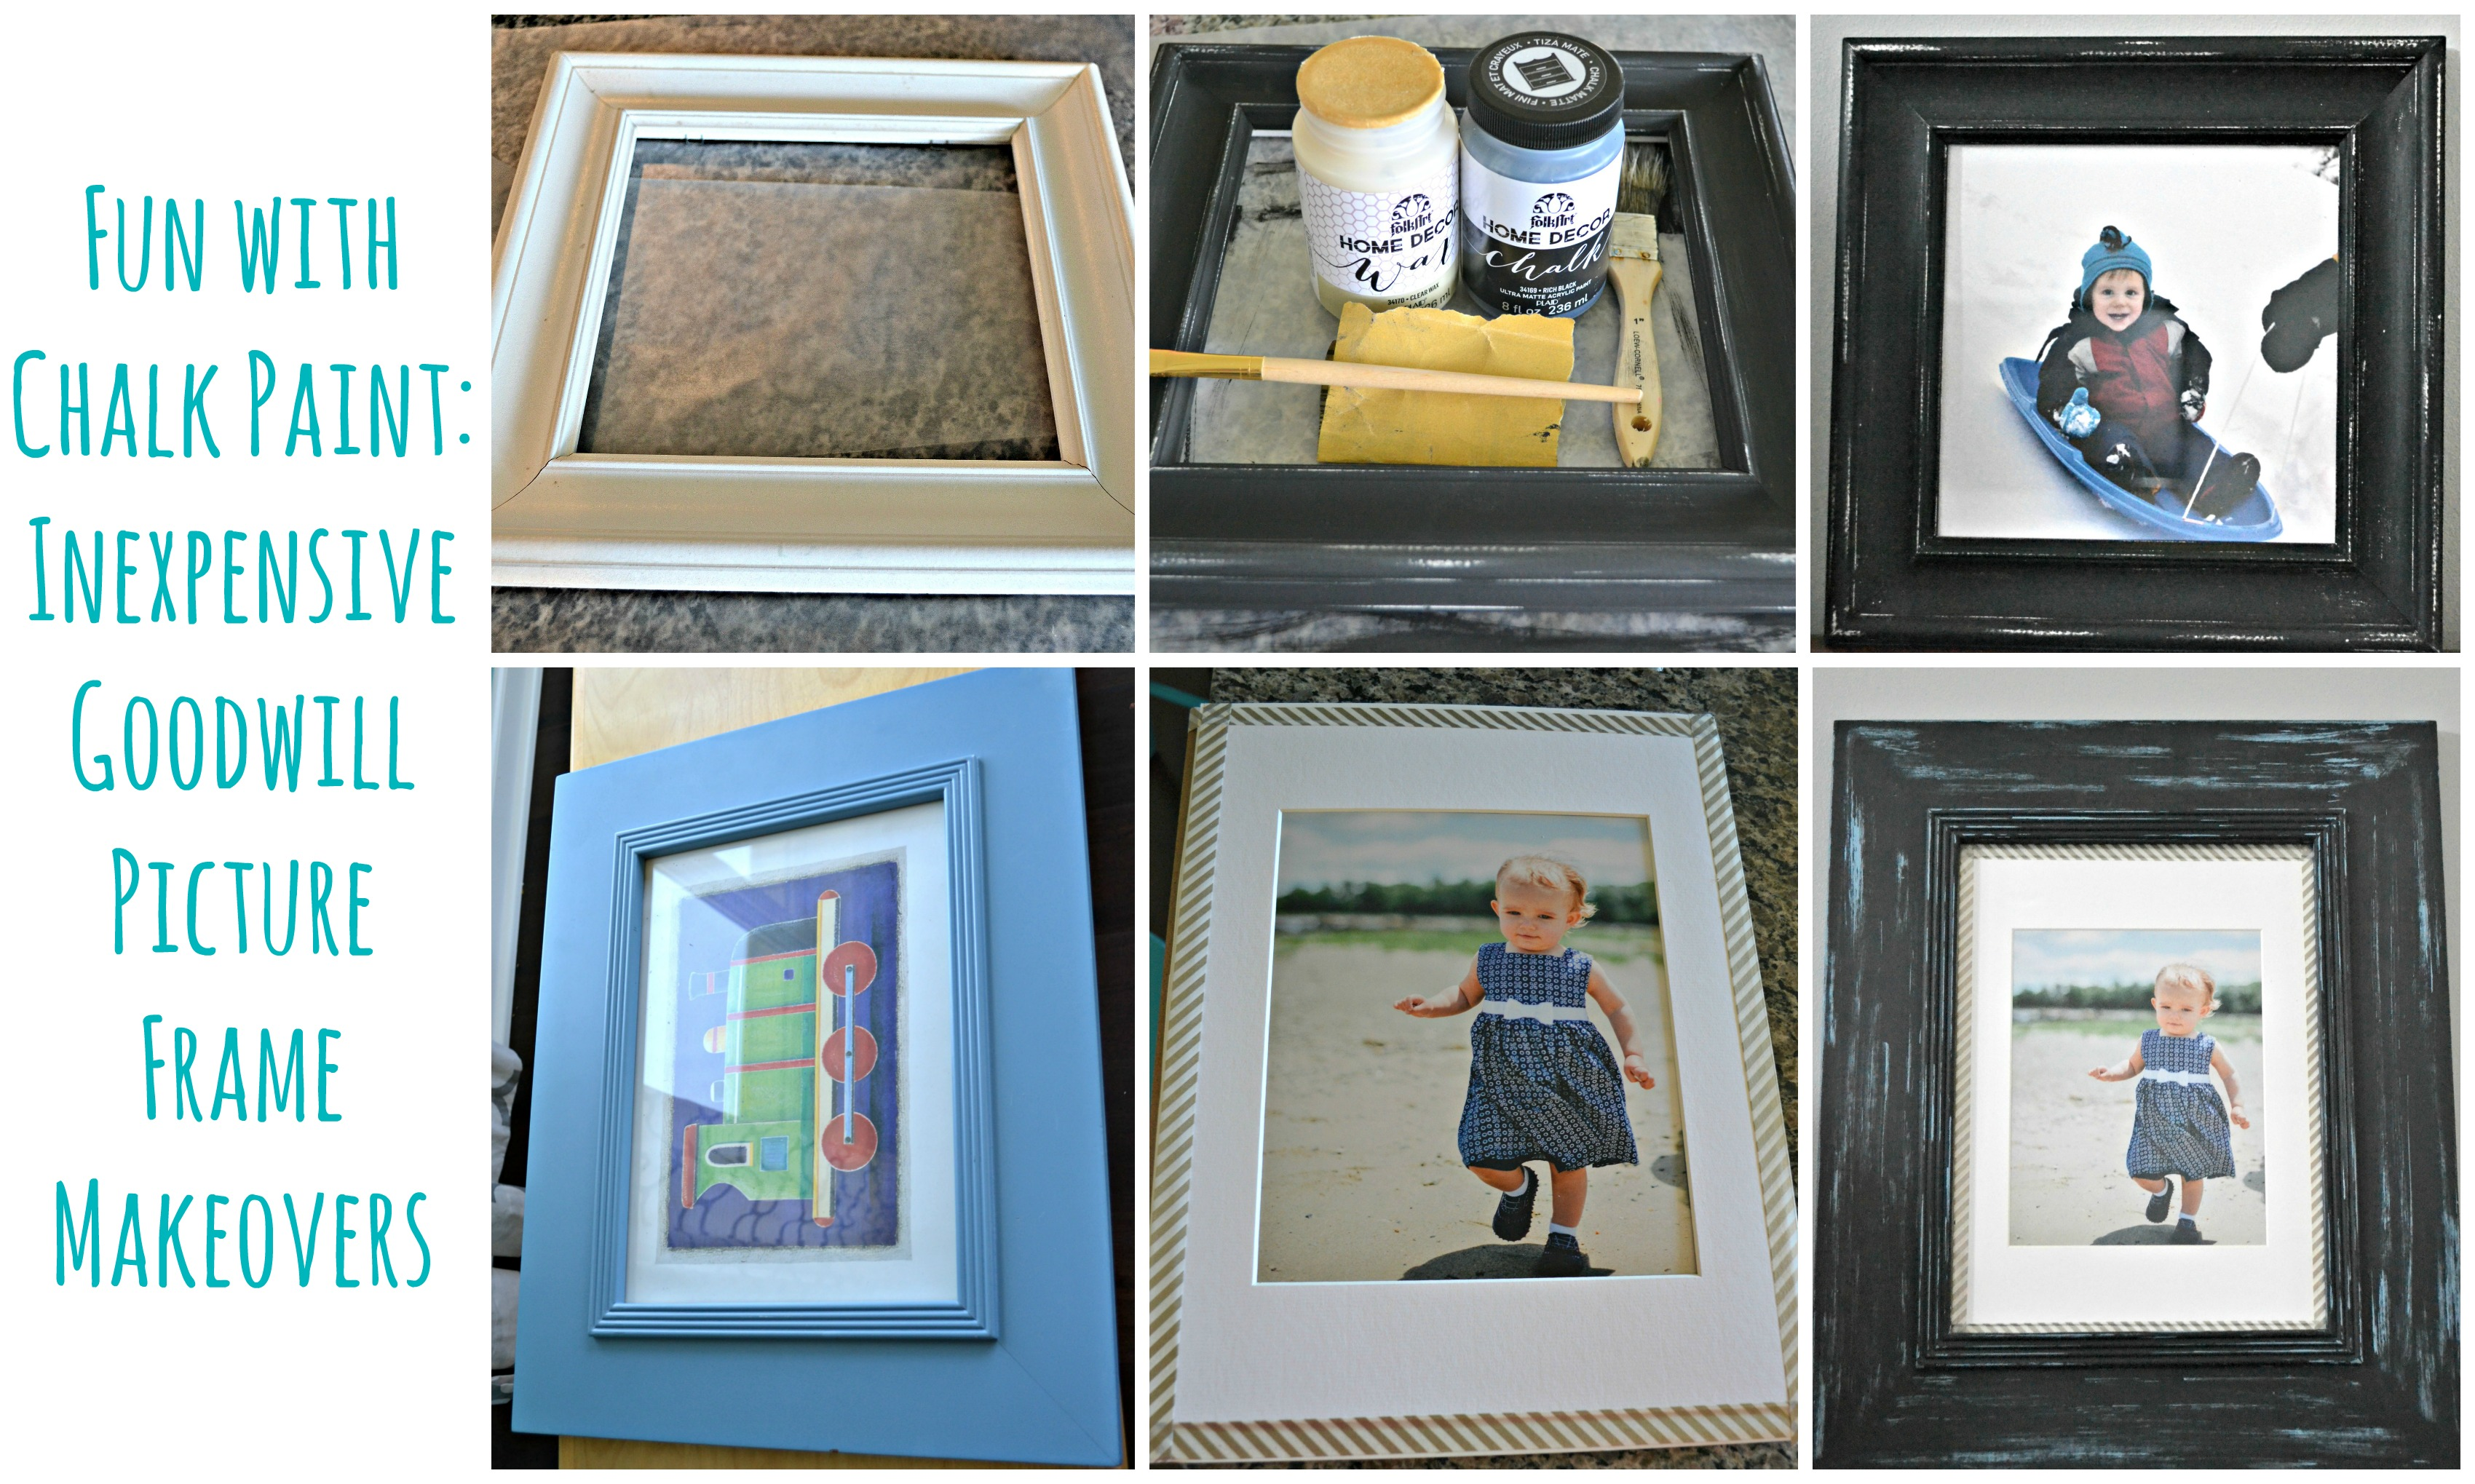 Fun with chalk paint inexpensive goodwill picture frame goodwill frame makeovers jeuxipadfo Choice Image